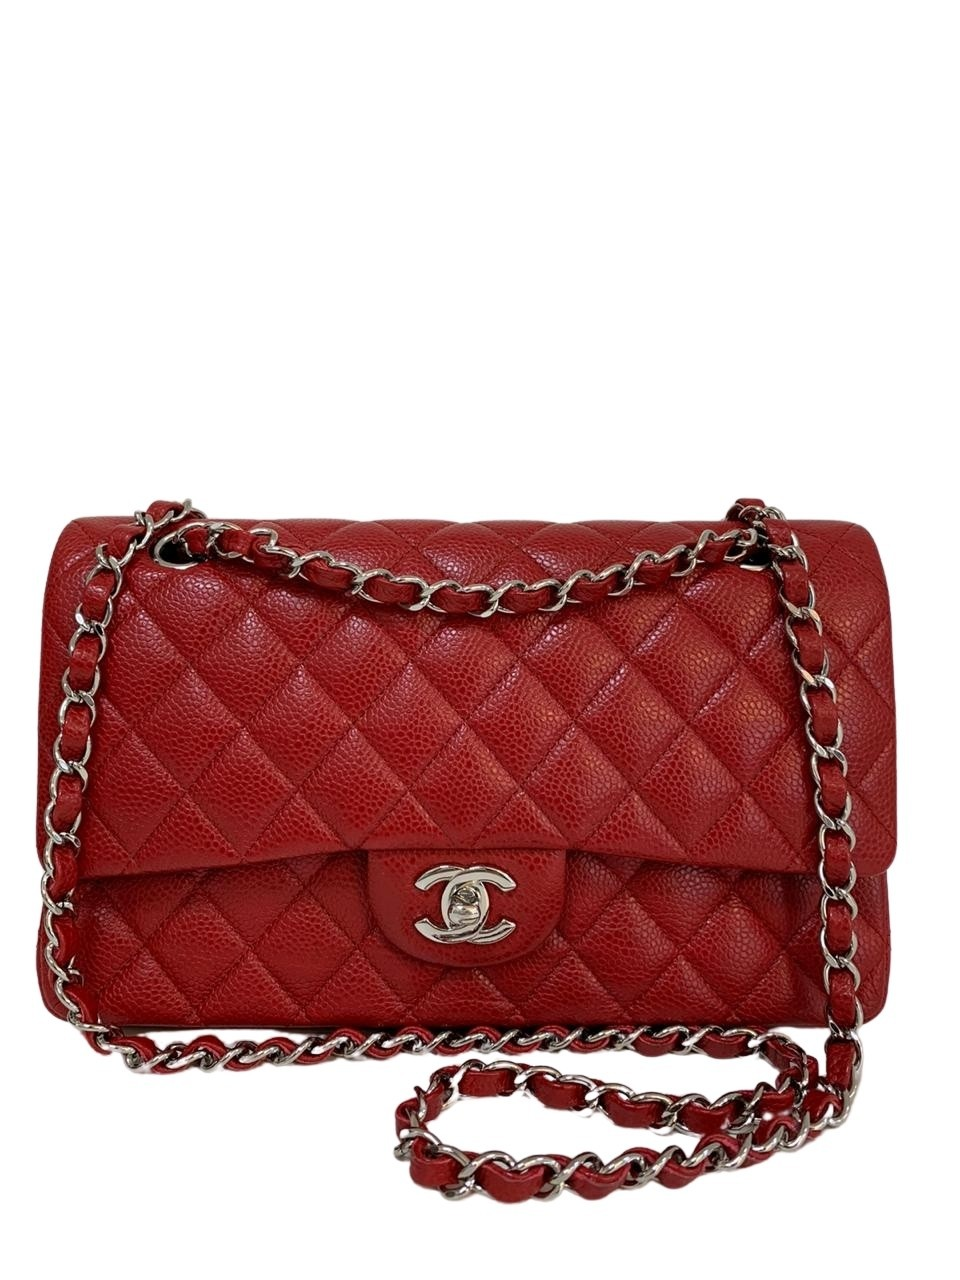 Bolsa Chanel Classic Medium Vermelha